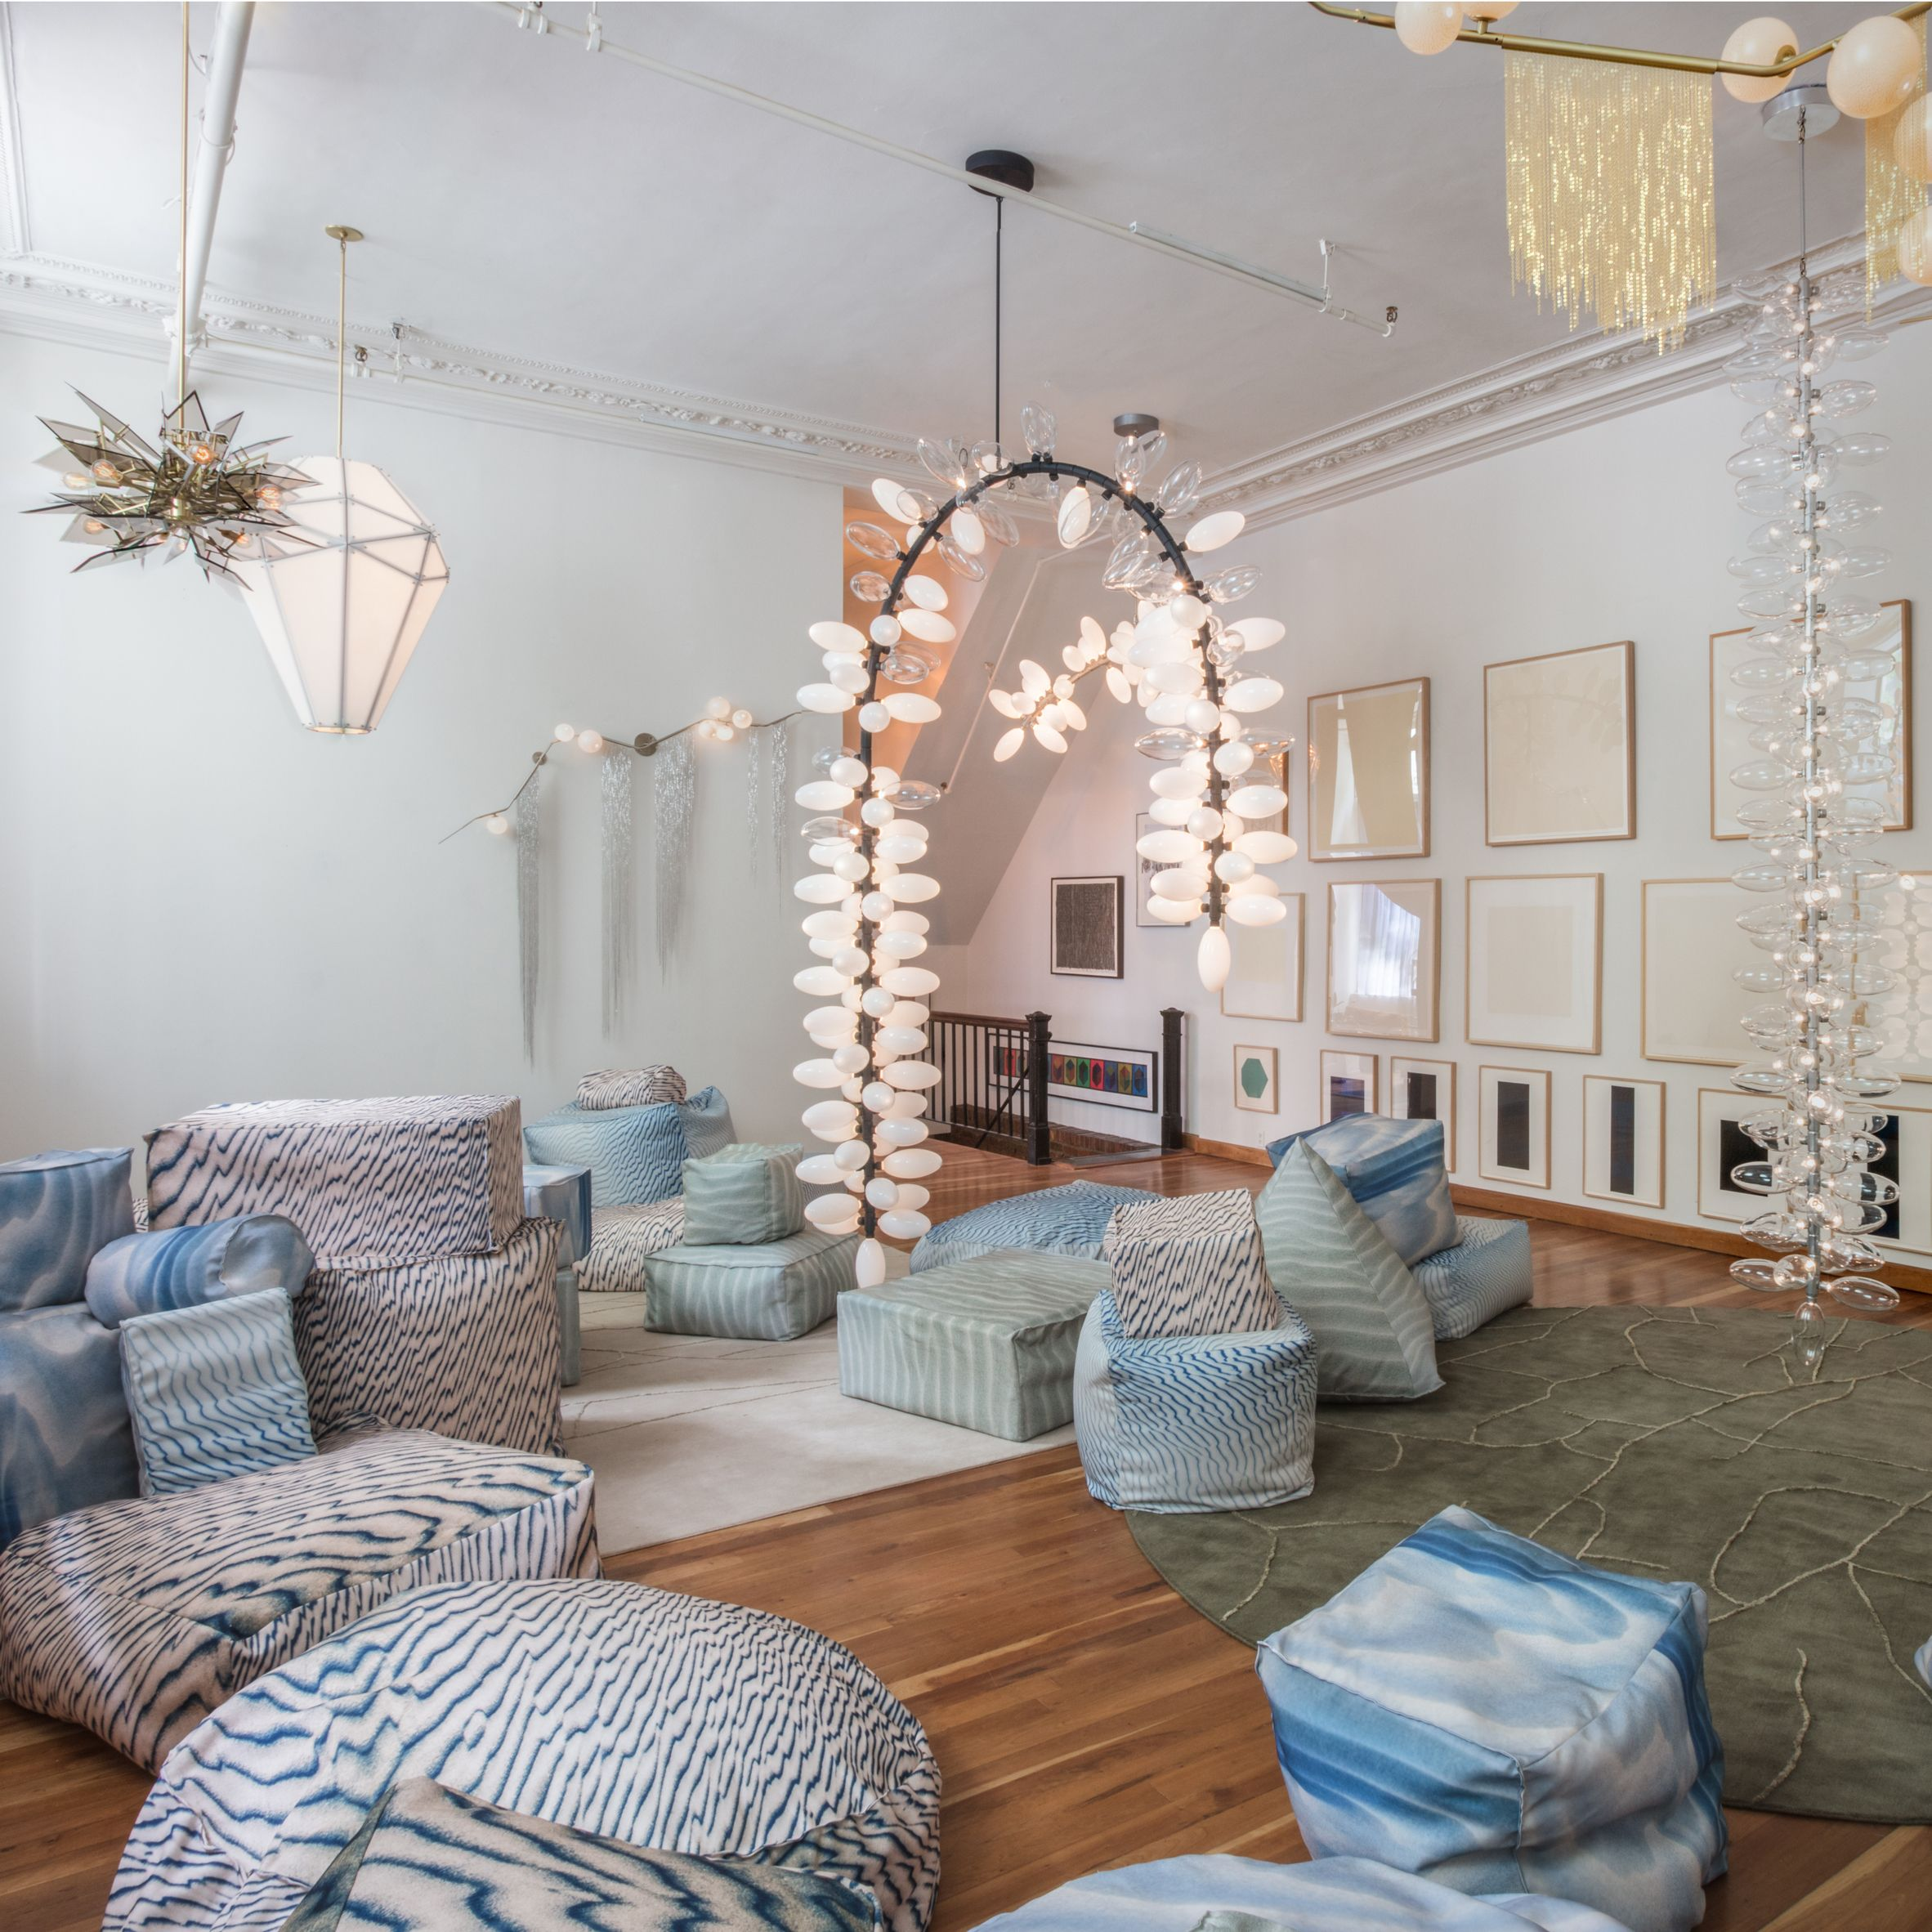 Wall lamps with draping metal chains by New York designer Lindsey Adelman and huge modular lights that bend in different directions by her colleague Karl Zahn feature in a tropical-themed display.